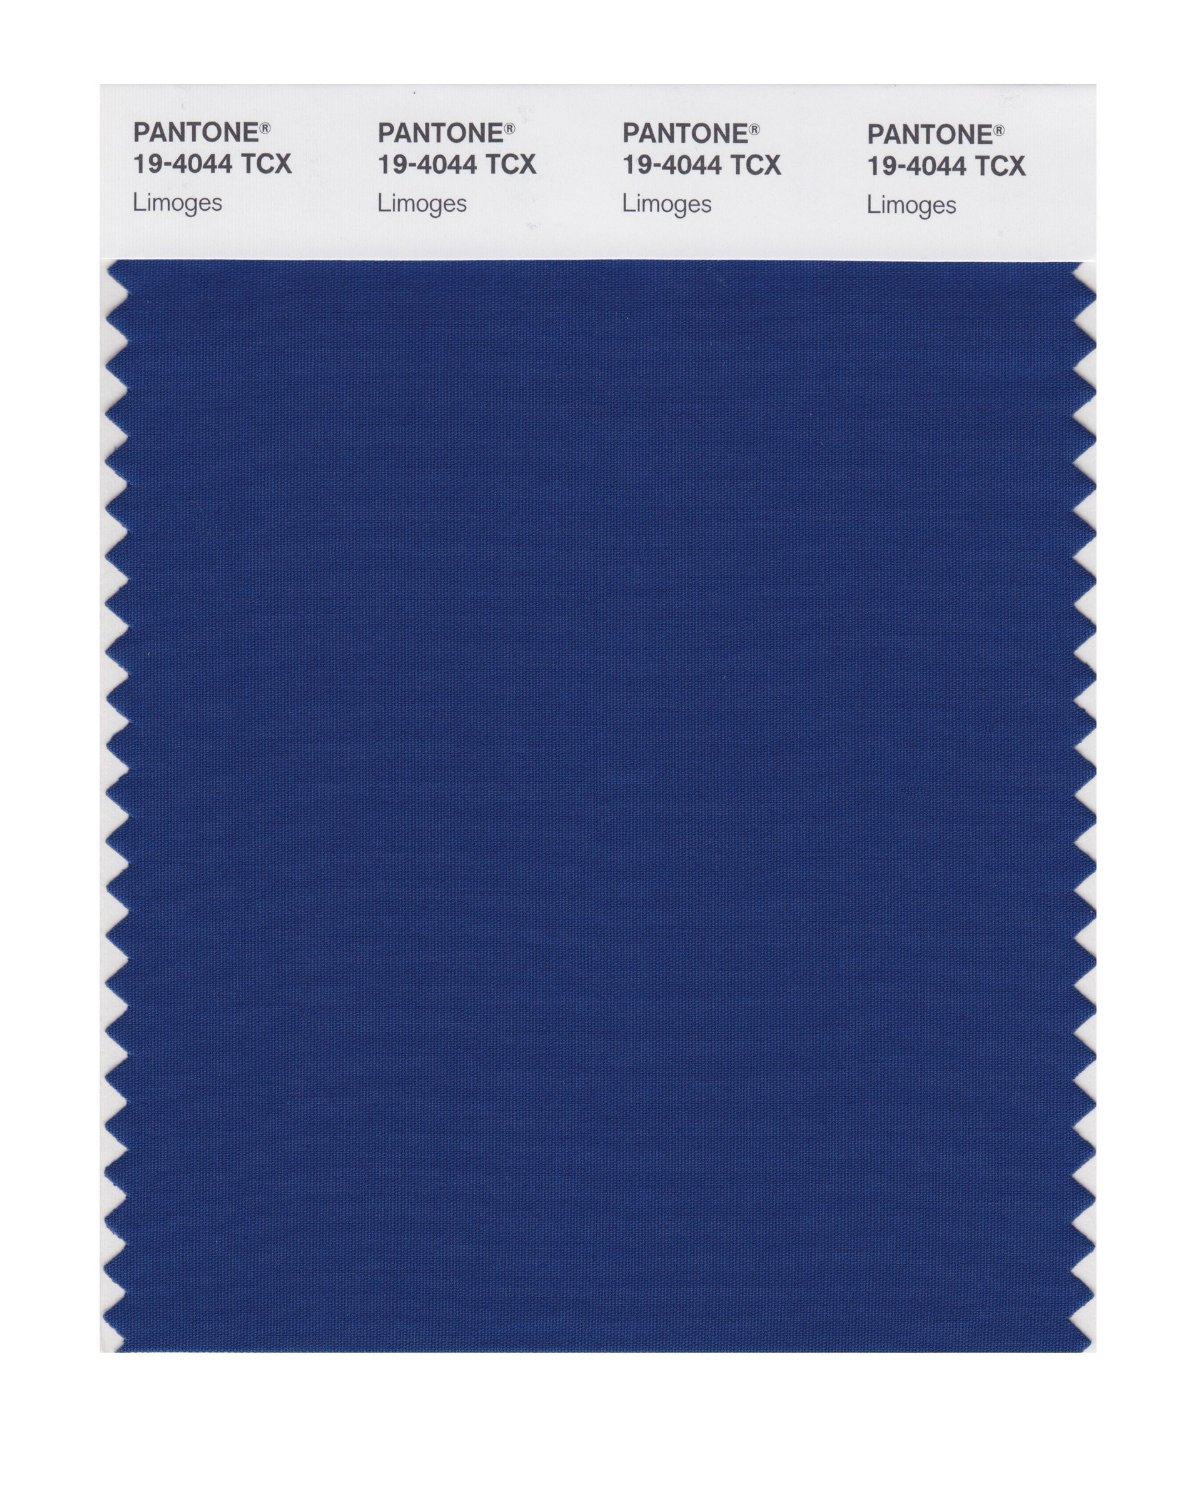 Pantone Smart Swatch 19-4044 Limoges